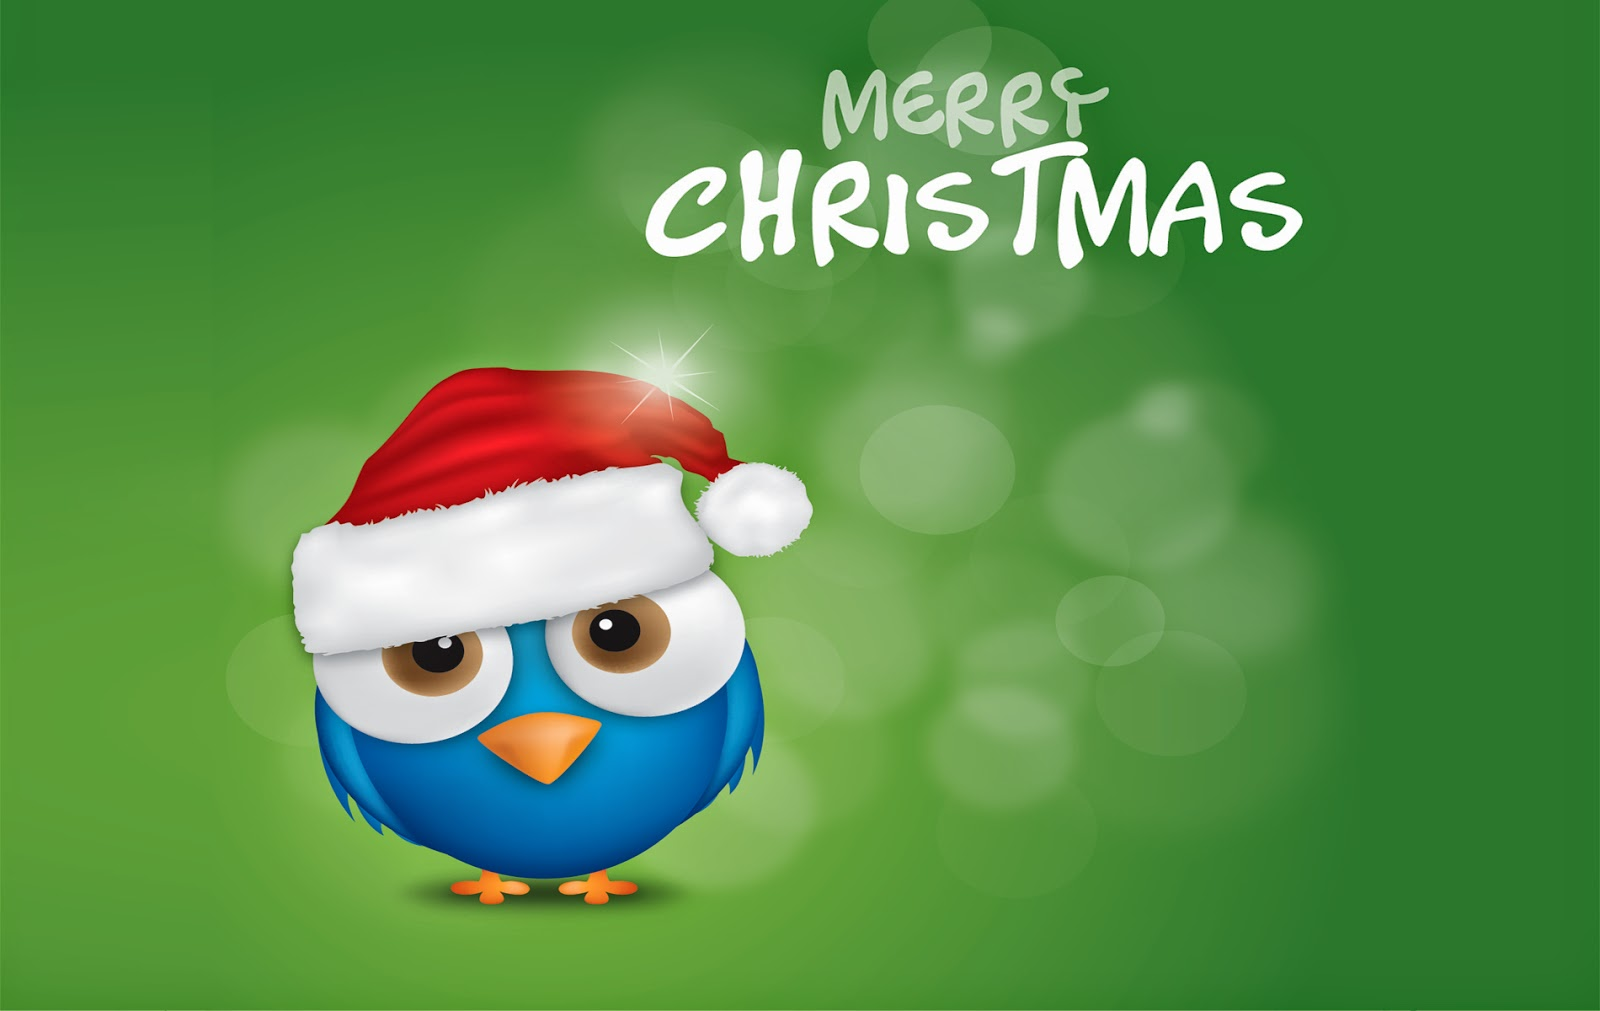 Christmas-twitter-bird-image-with-merry-christmas-text-picture.jpg